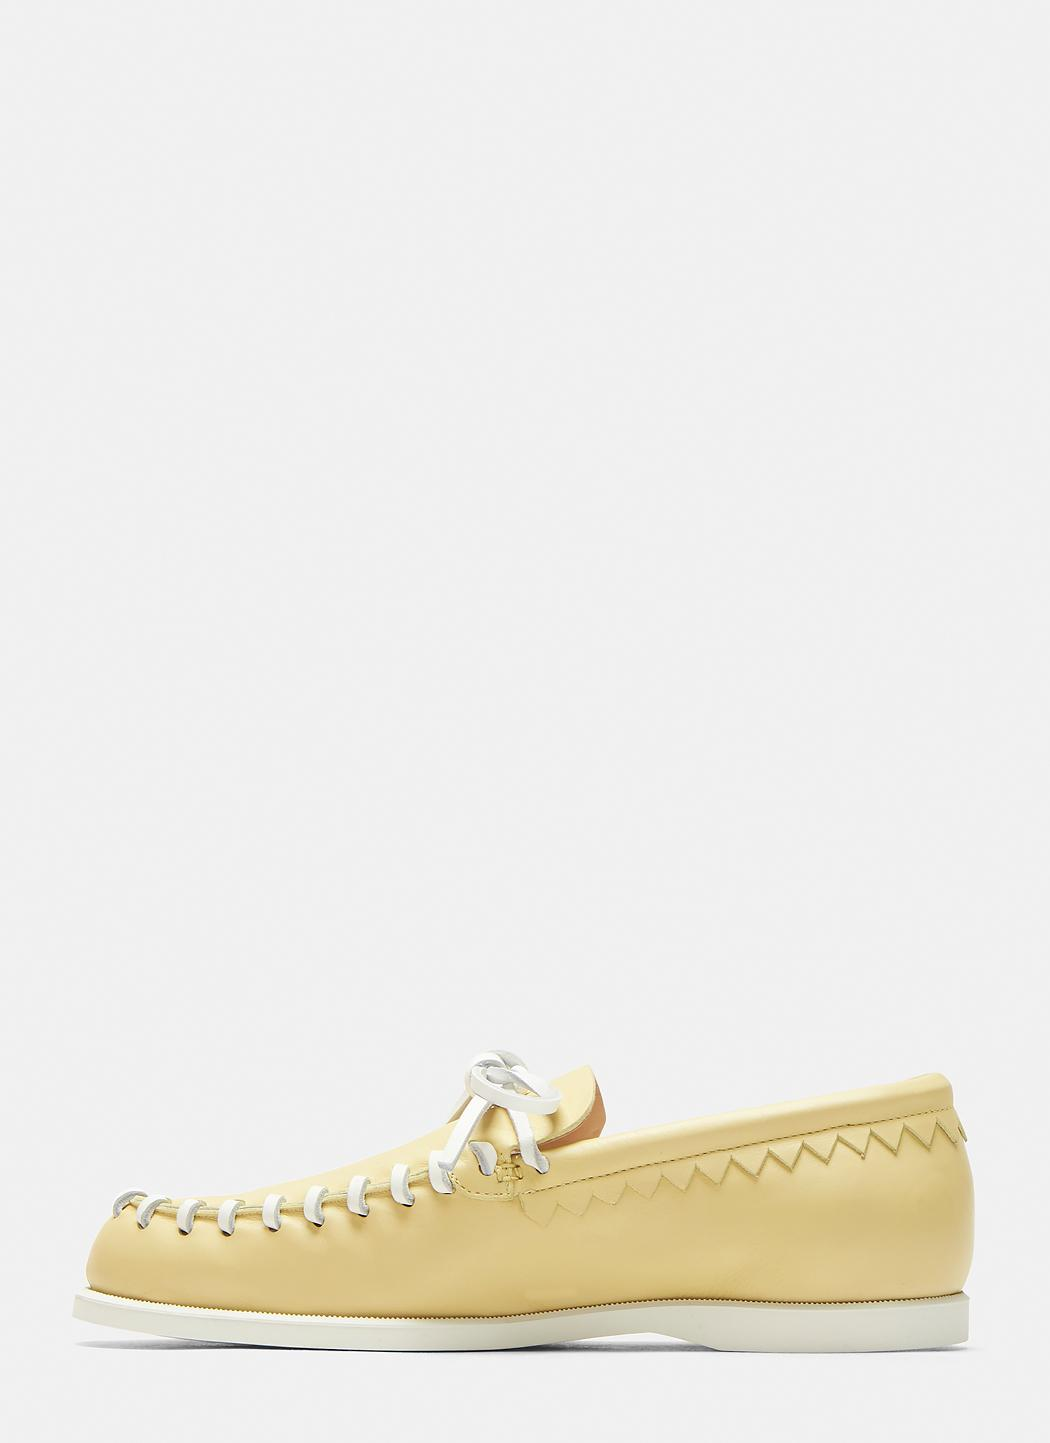 Collections Discount Finishline Pacio Loafers Acne Studios Inexpensive Cheap Price 100% Original Online Discount Codes Shopping Online psOdOxY